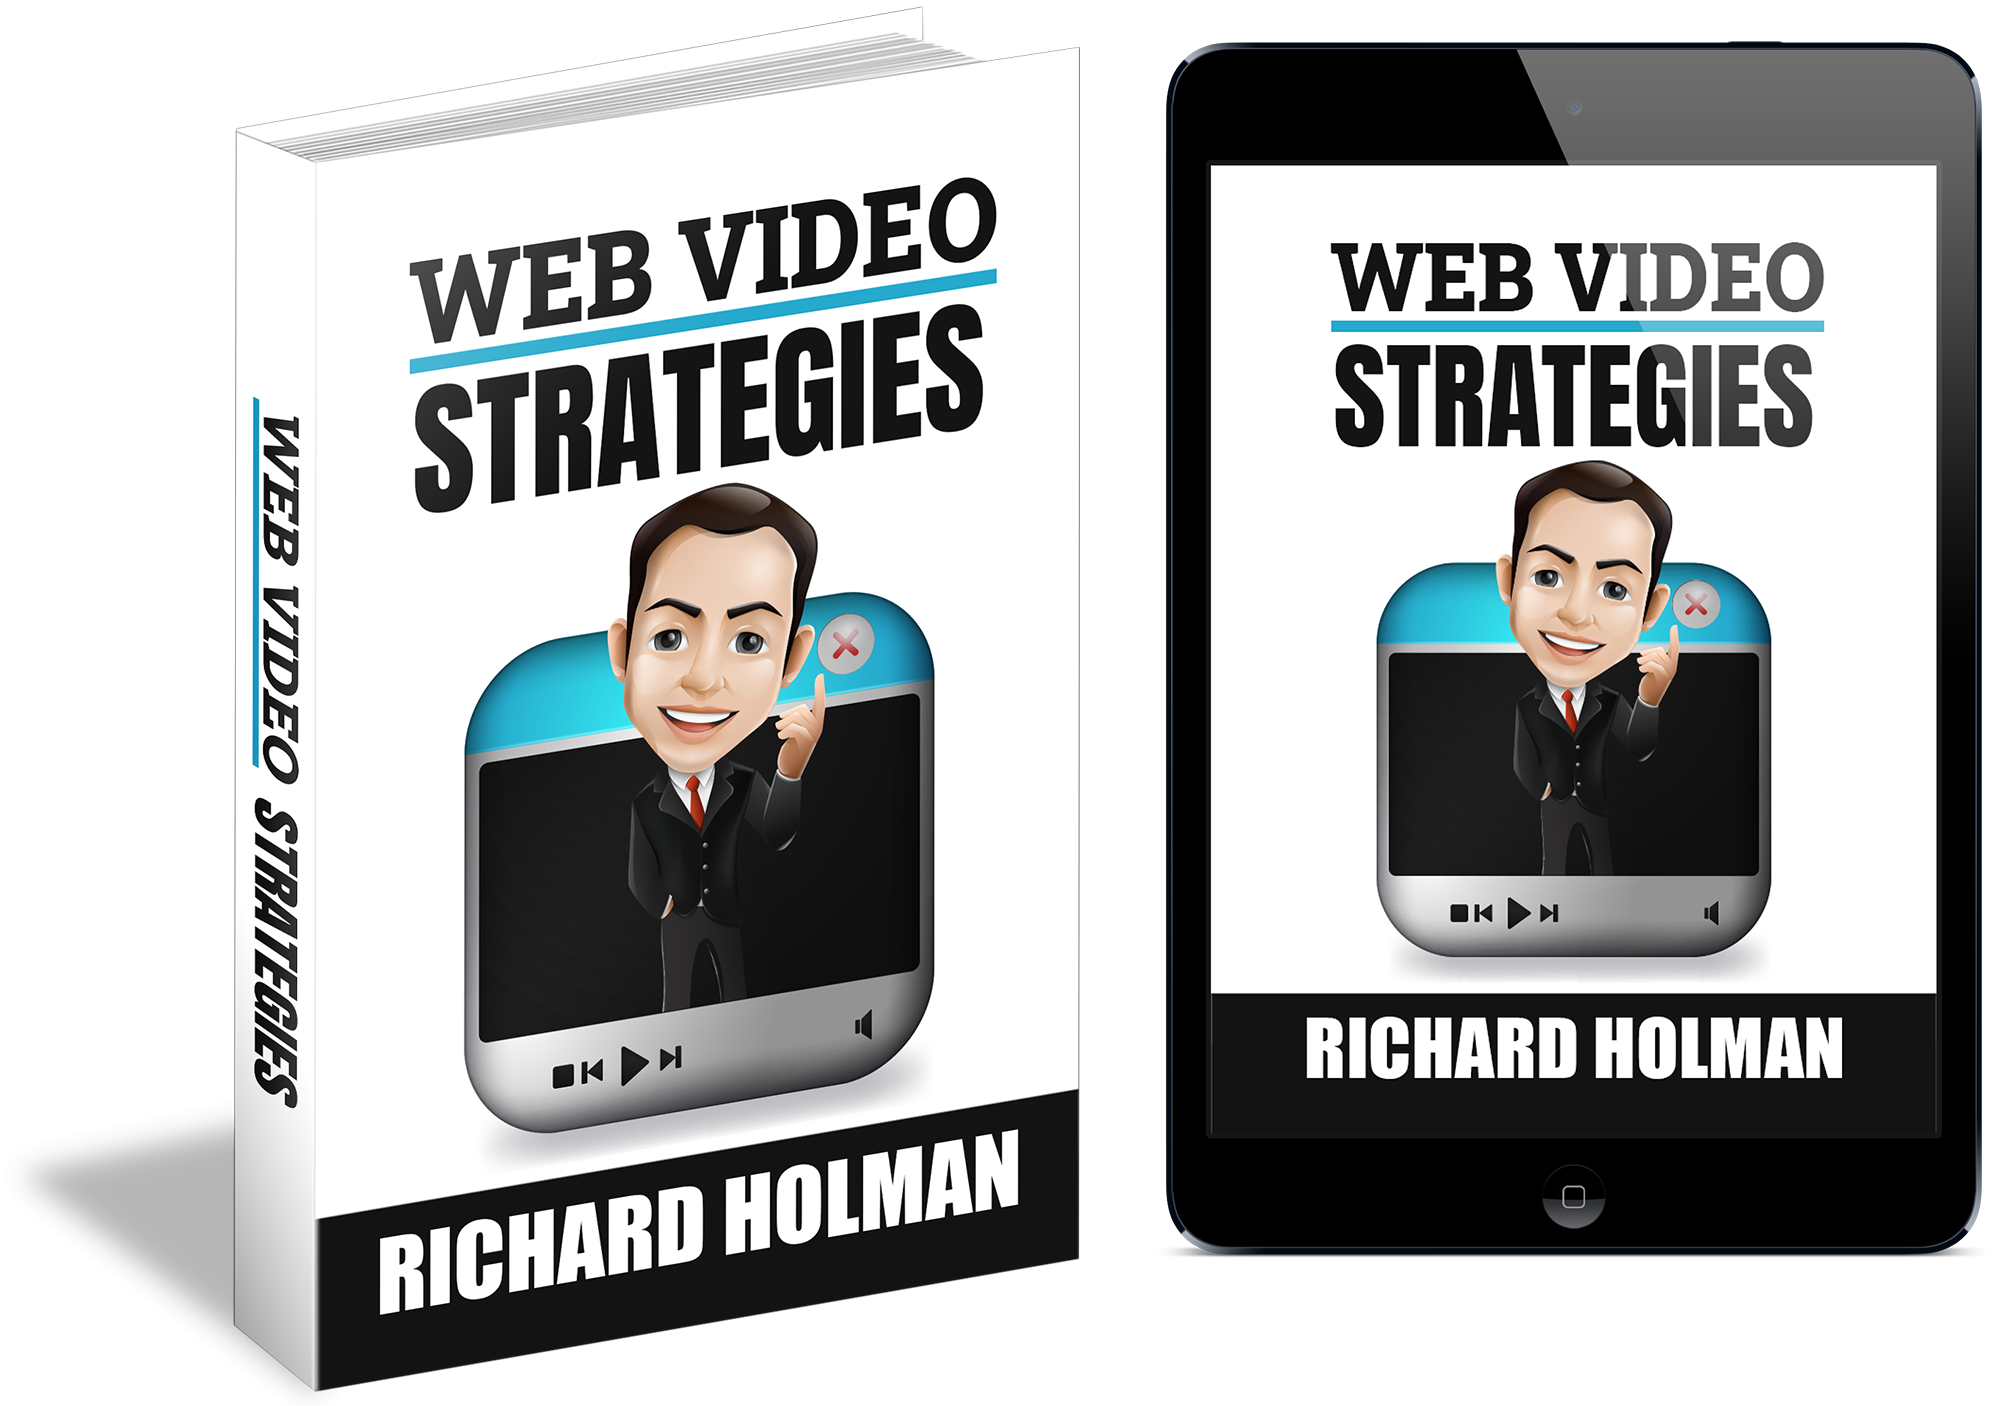 Web Video Strategies